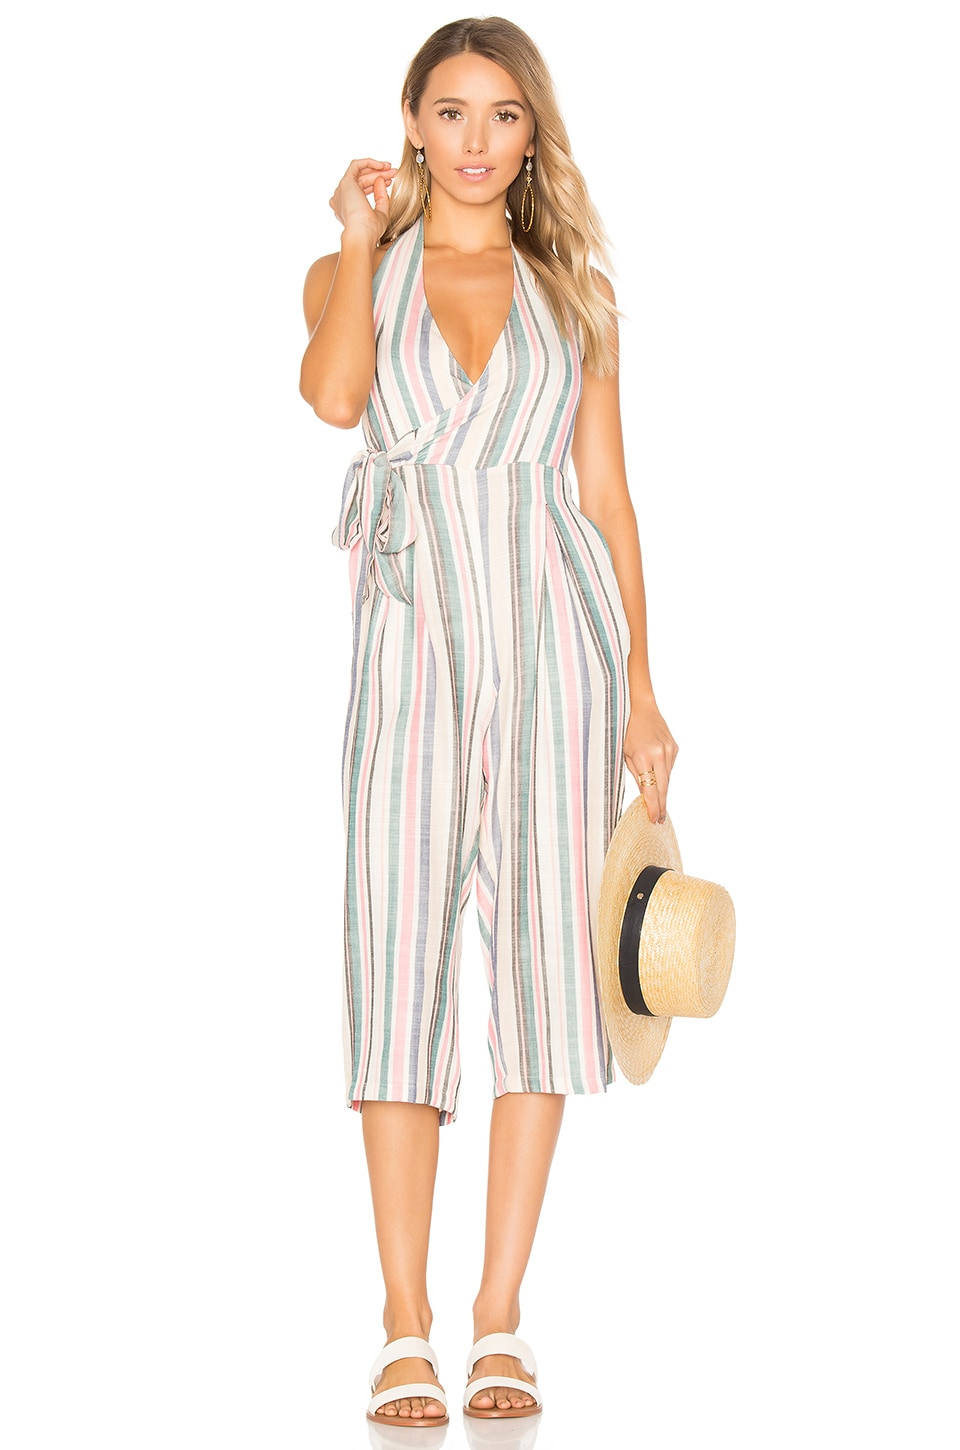 The Camille Jumpsuit by Solid & Striped